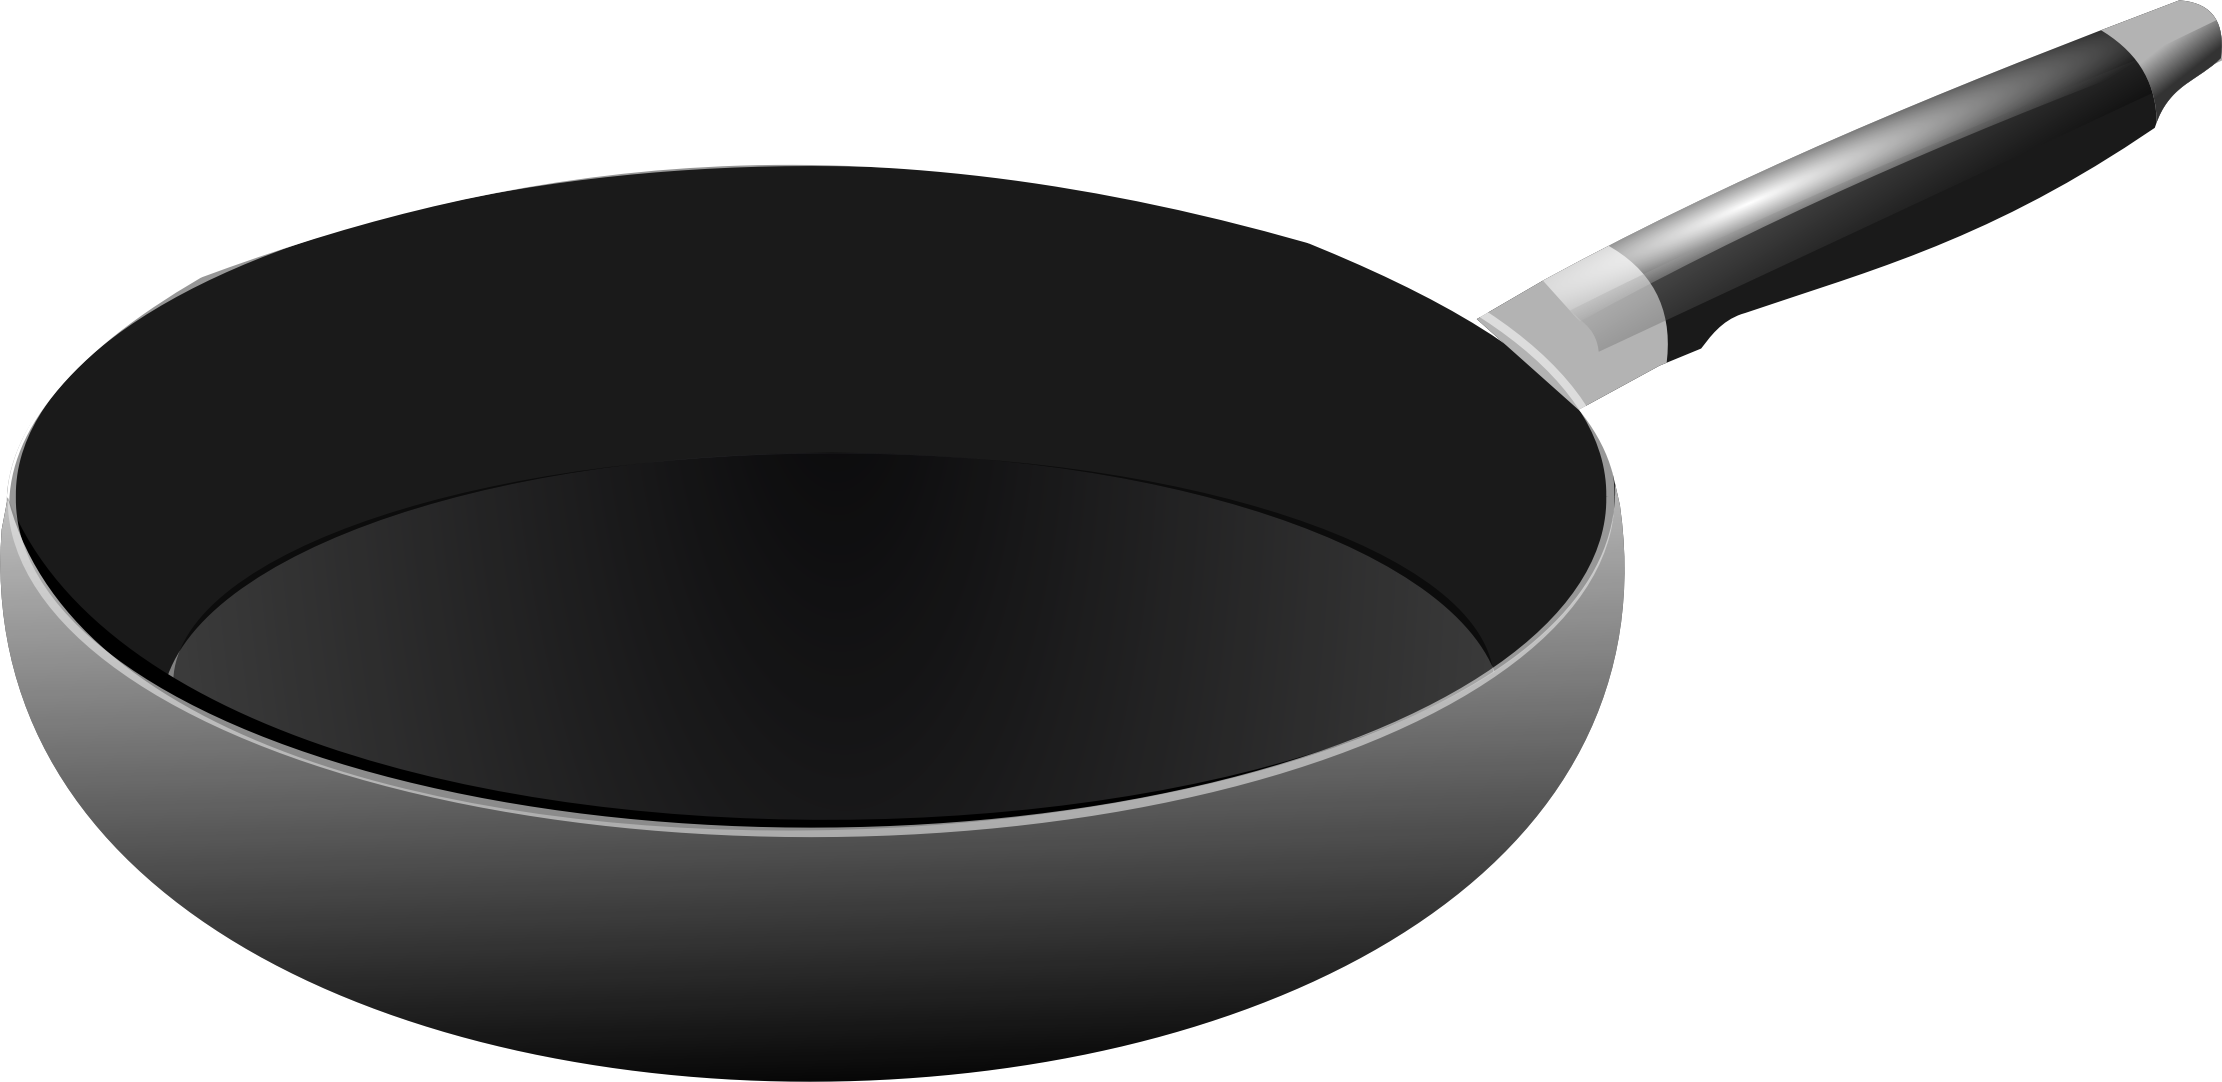 Clipart cooking pan.